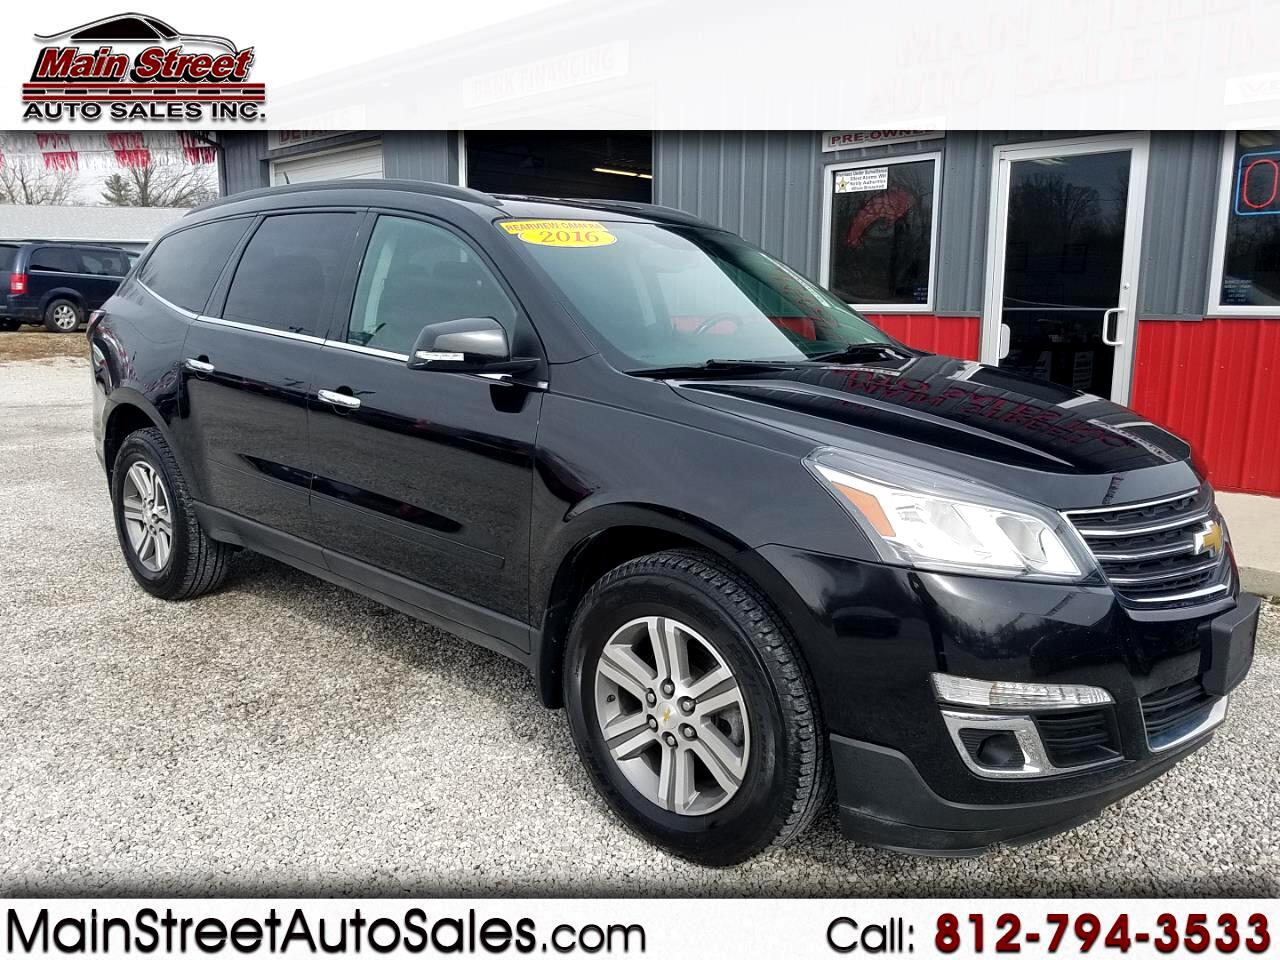 Chevrolet Traverse 1LT AWD 2016